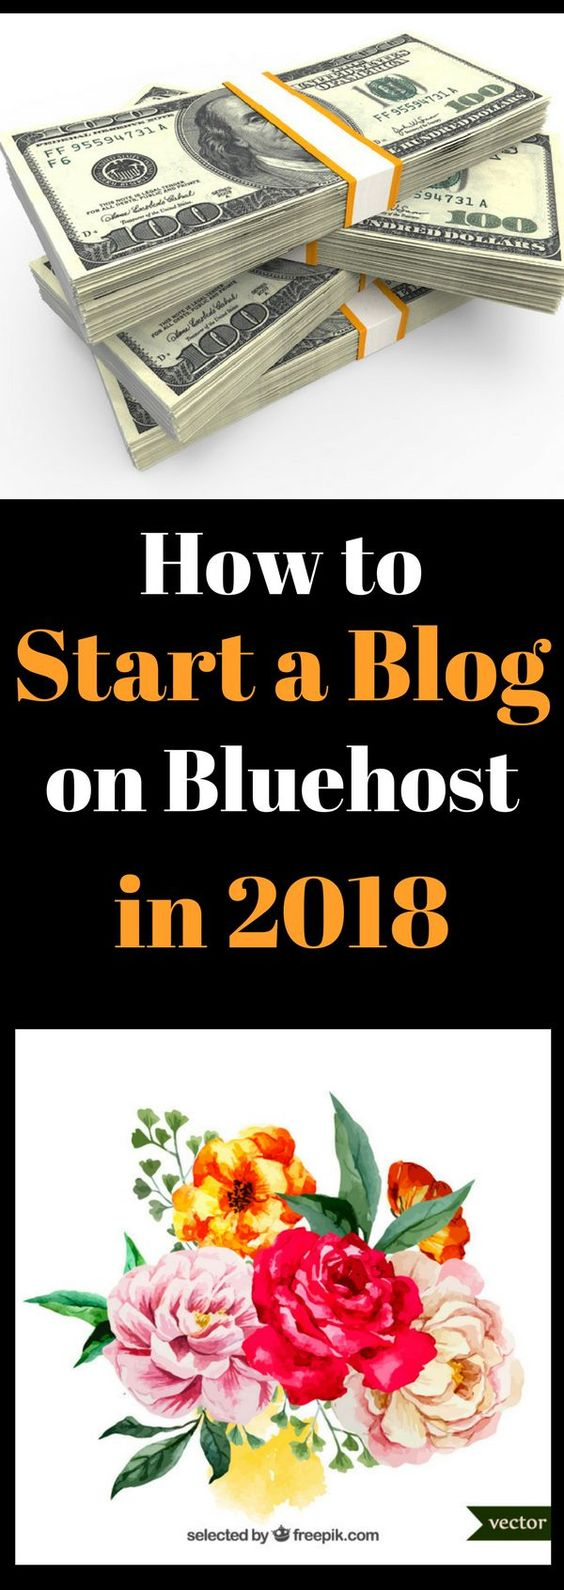 Cheap WordPress Hosting - My First Date with Bluehost Web Hosting